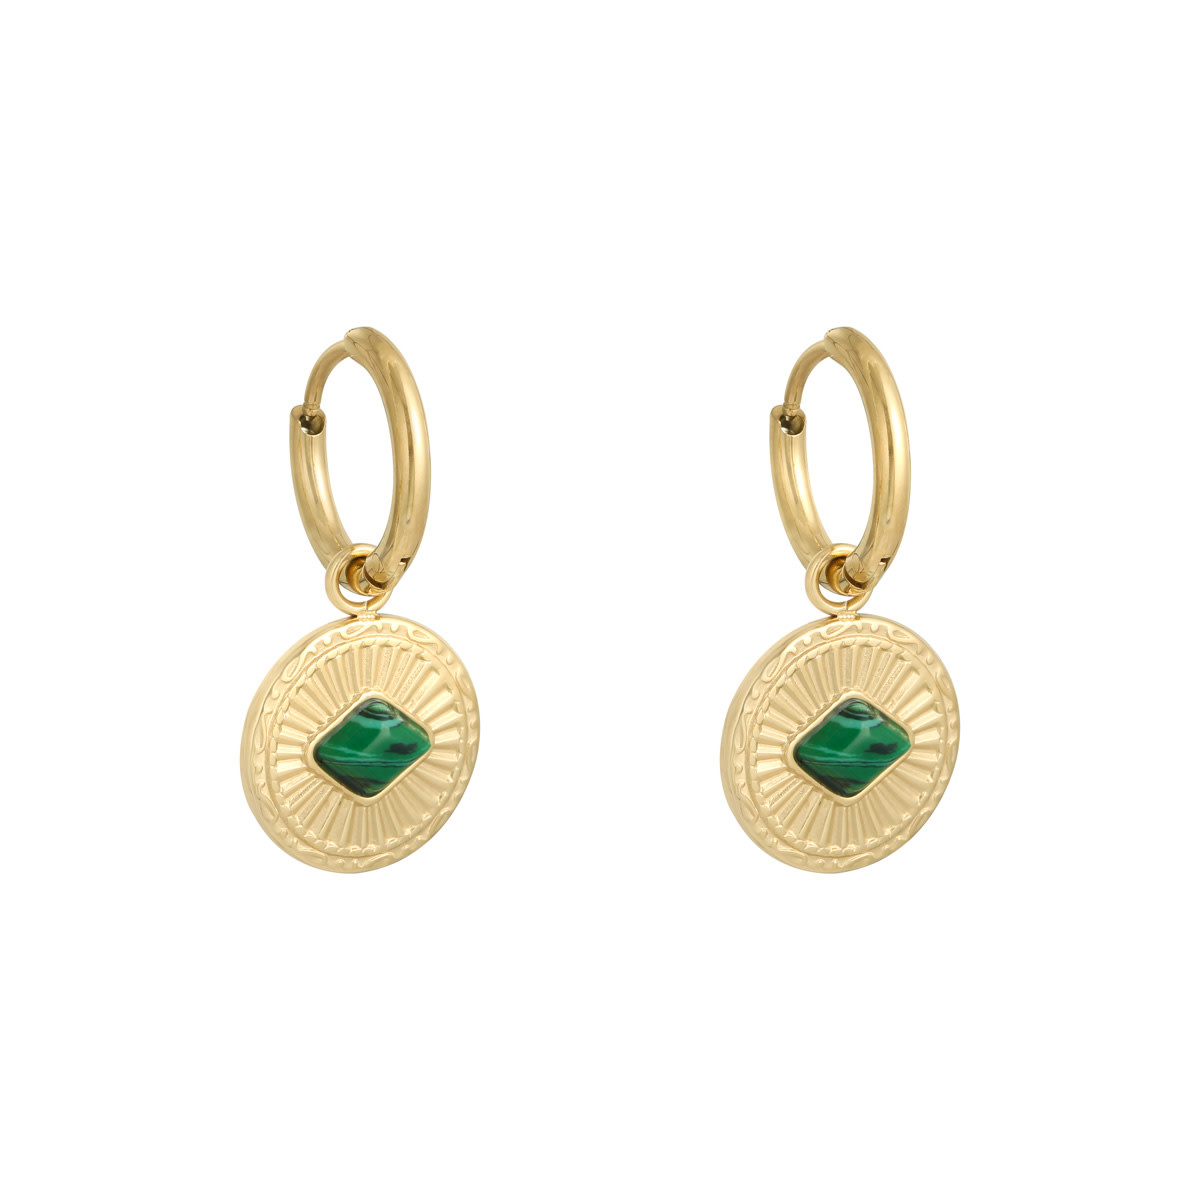 With love Earrings Proud to wear gold - green